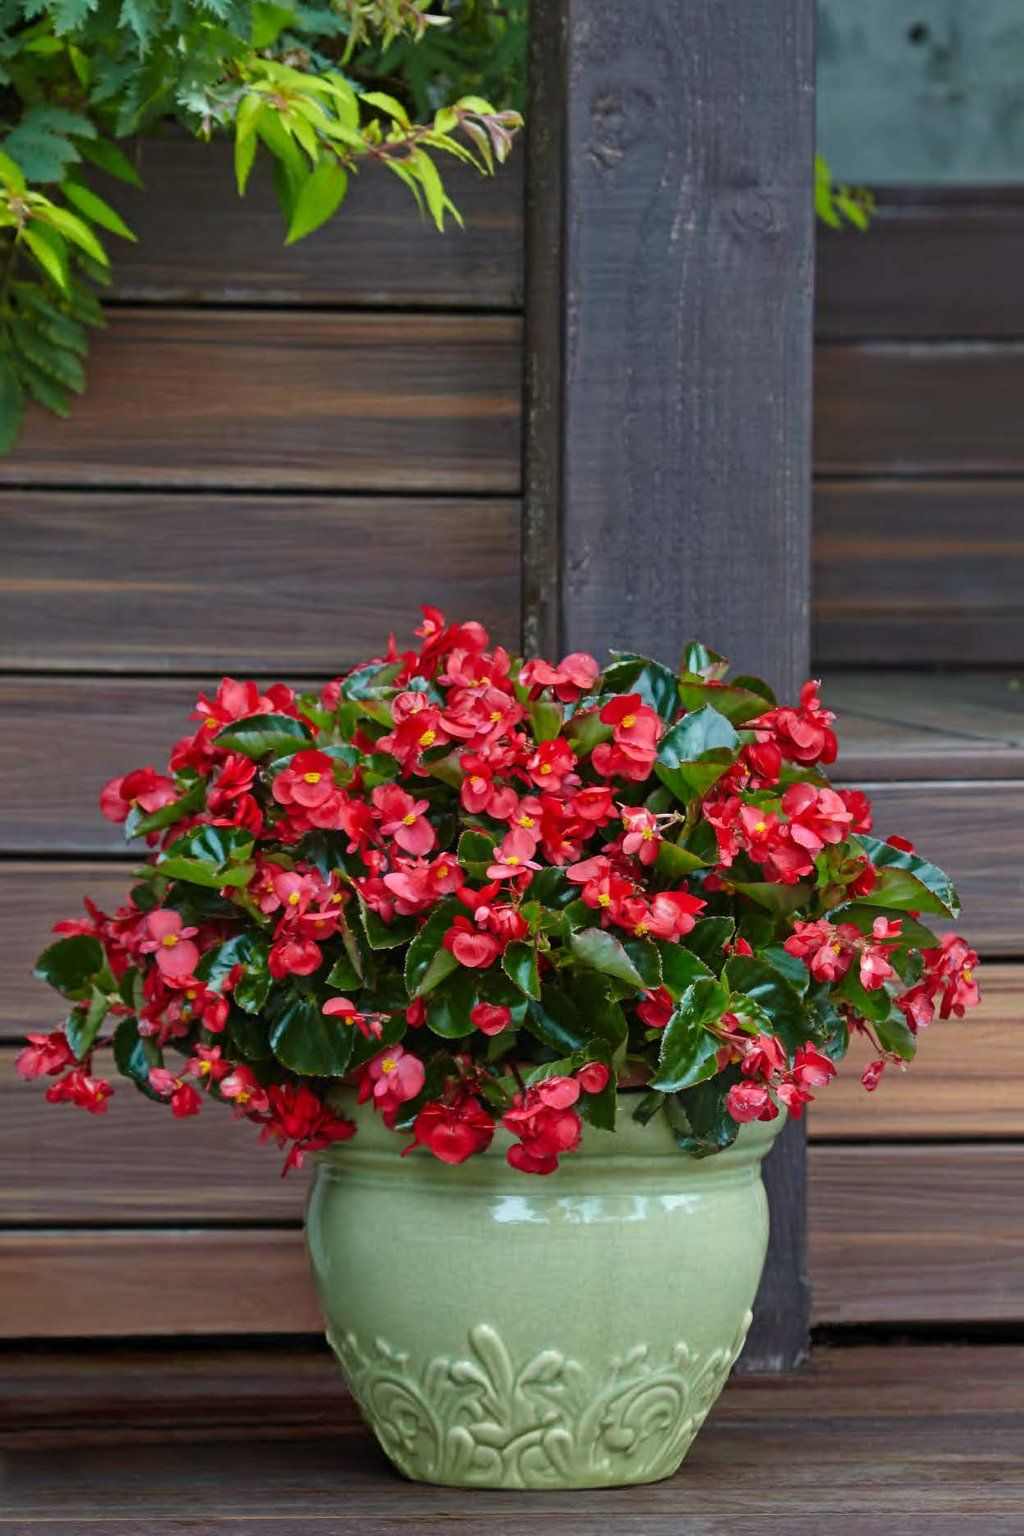 Surefire Red Begonia Is The Best Plant For New Gardeners Or Those